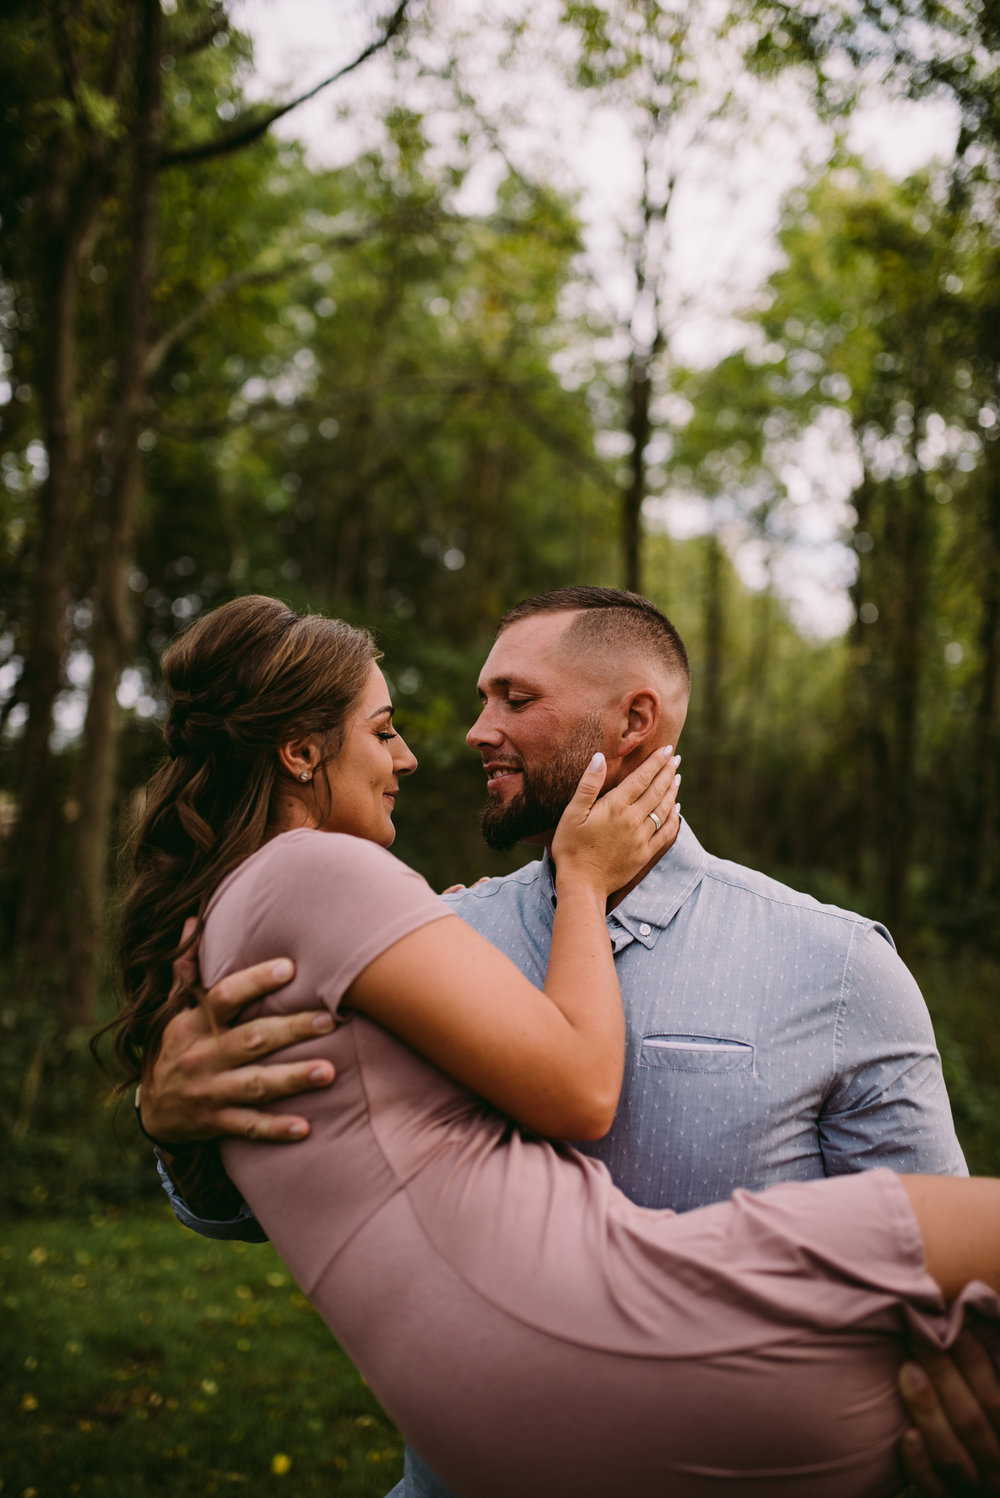 Brooke&Blake_EngagementSession_October2018_SamanthaRosePhotography_046.JPG